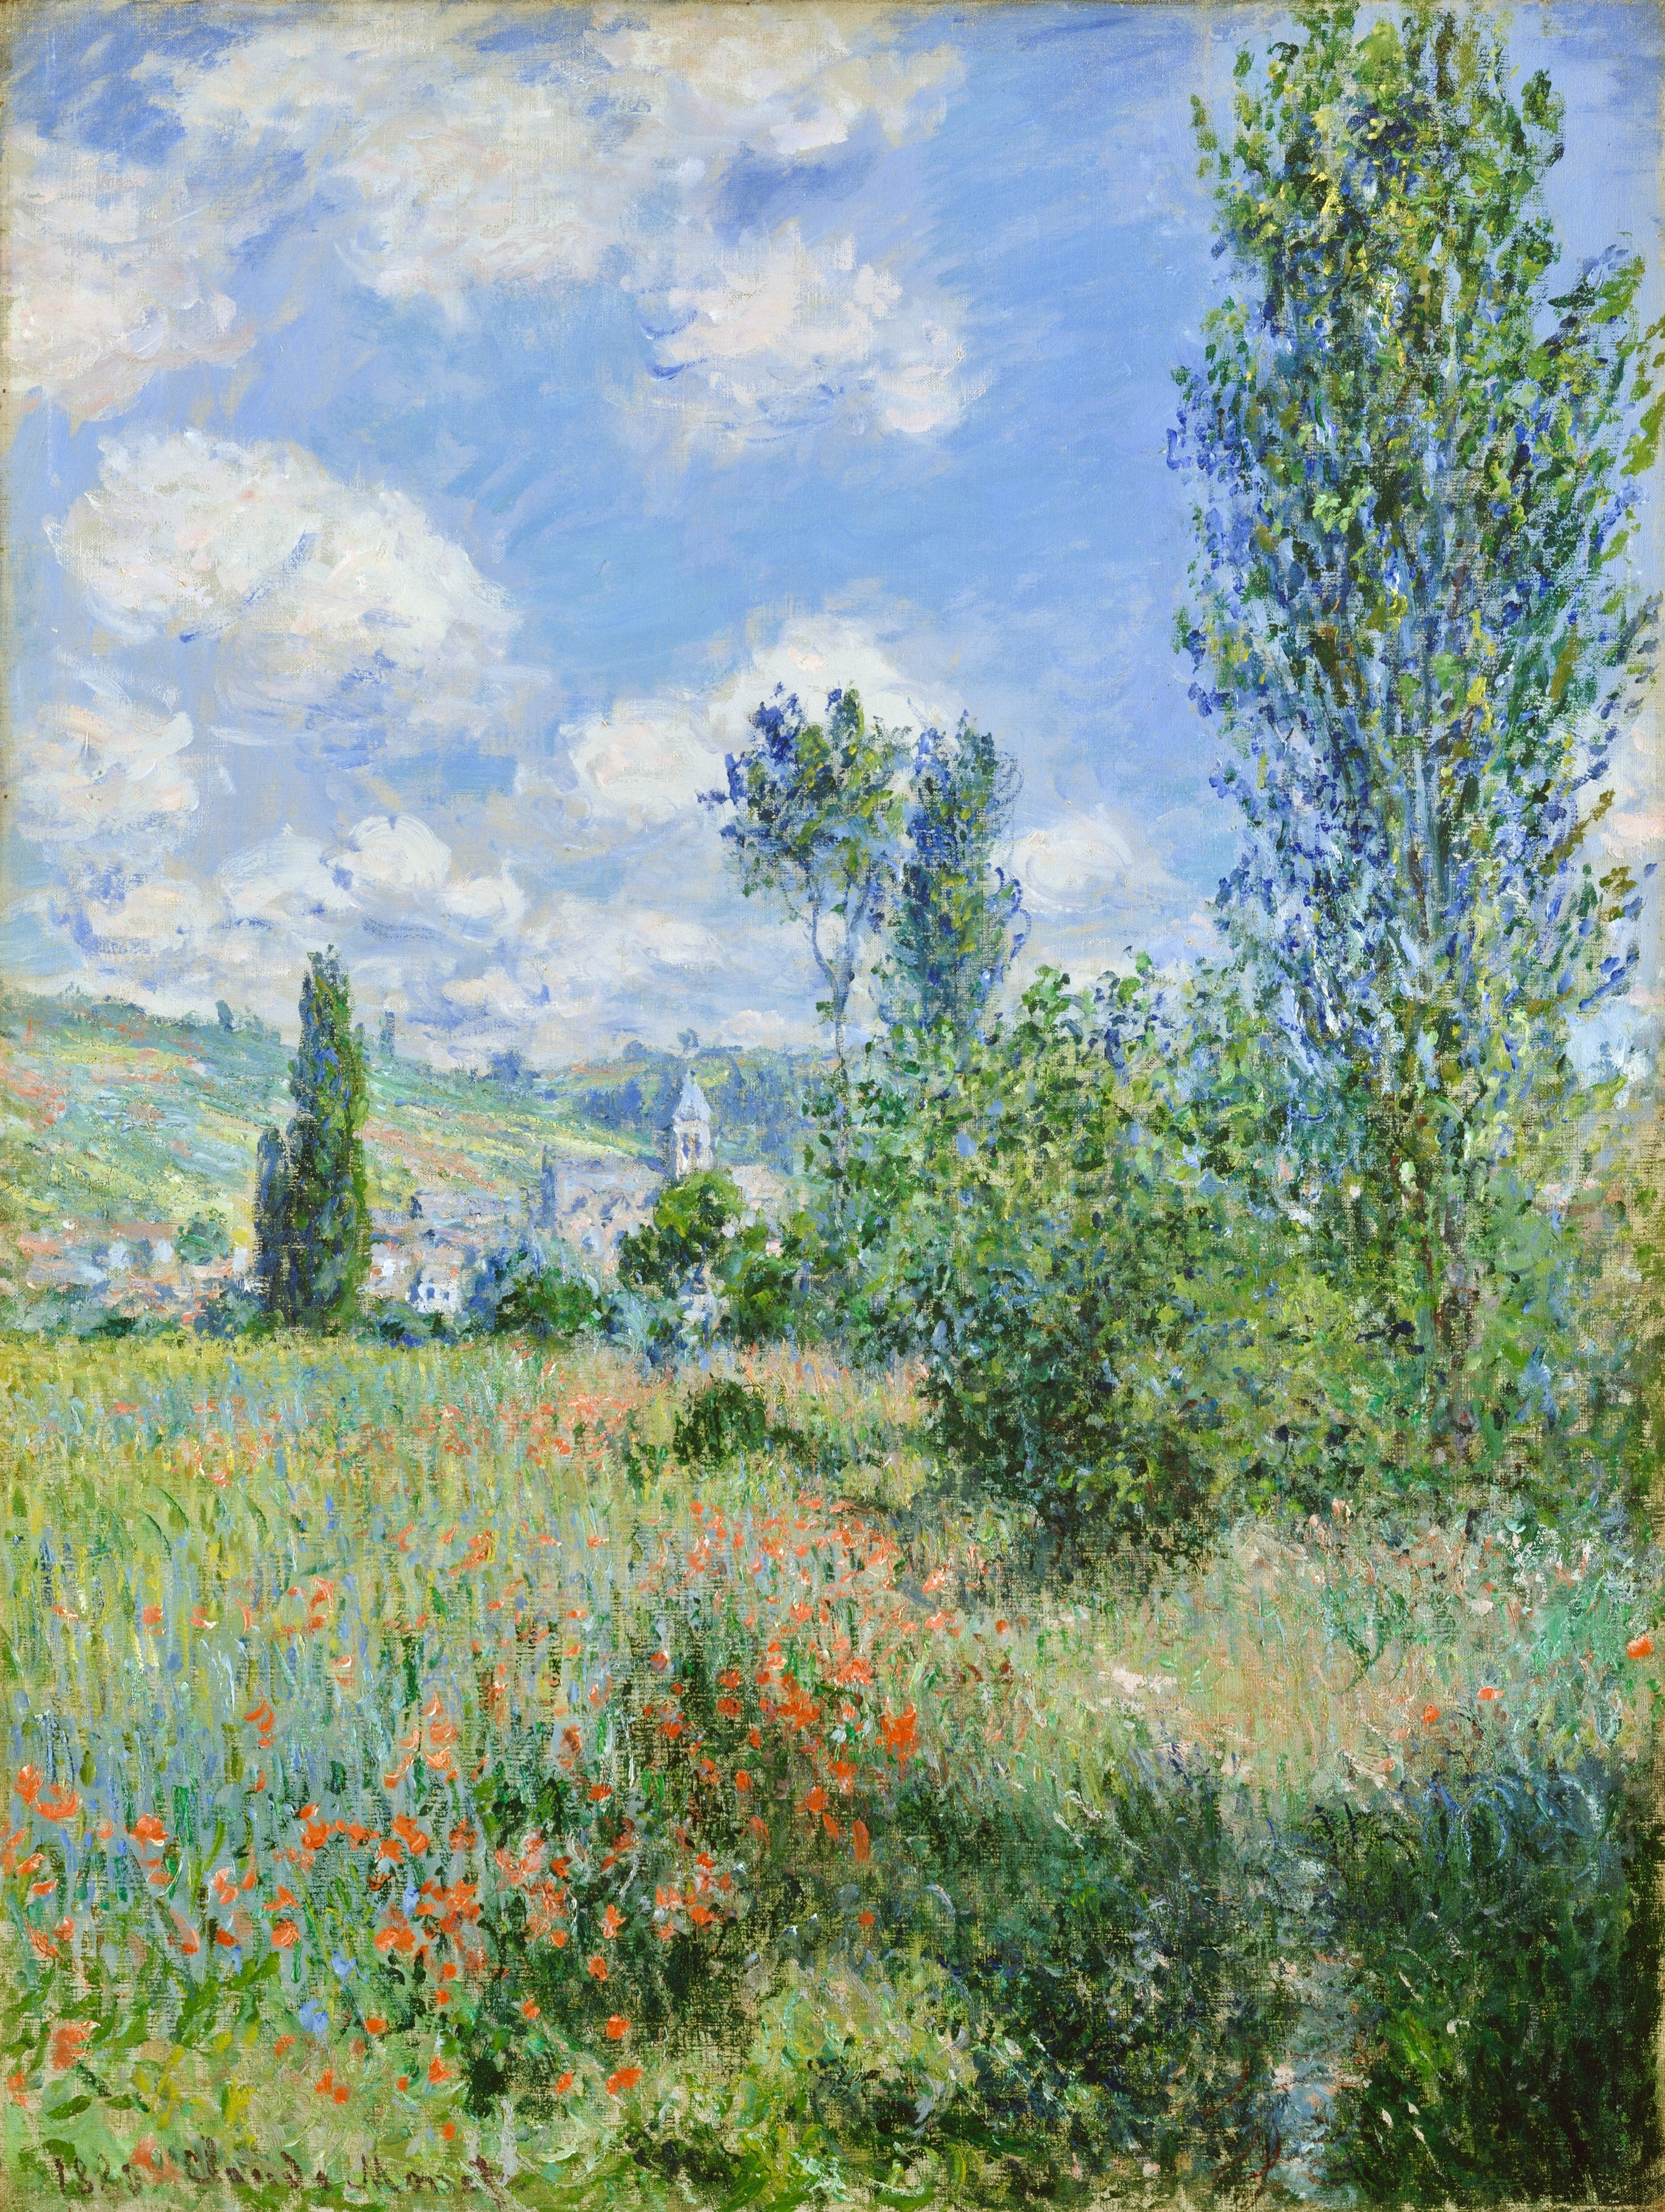 Lane in the Poppy Fields, View of Vétheuil, by Claude Monet, 1880